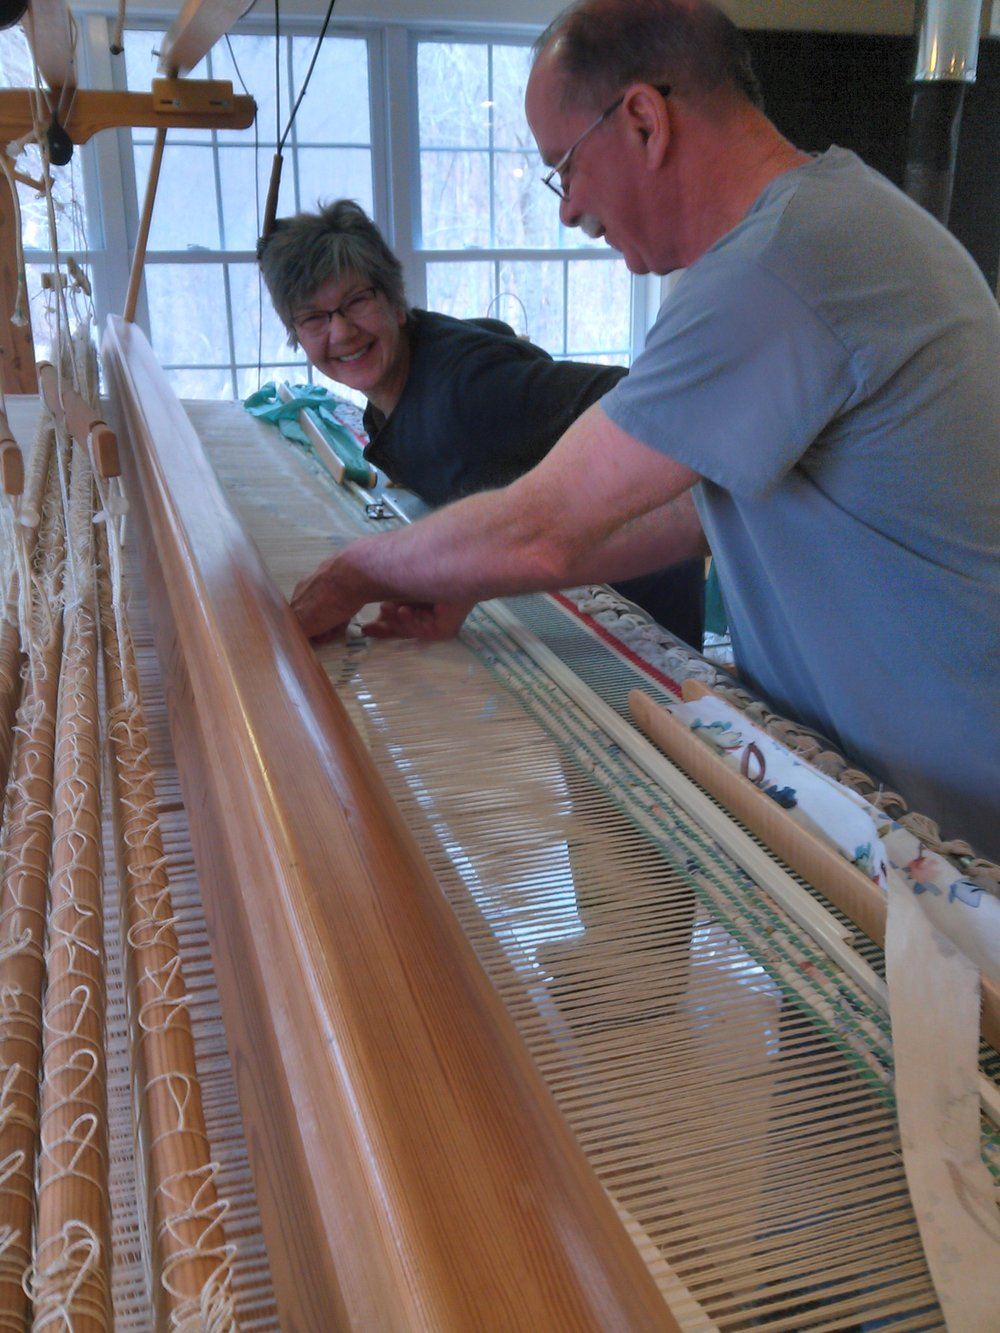 The Old Lyme studio also houses the 11-foot-wide Glimakra loom used for weaving large rugs.  A lot of smiling occurs in both studios!